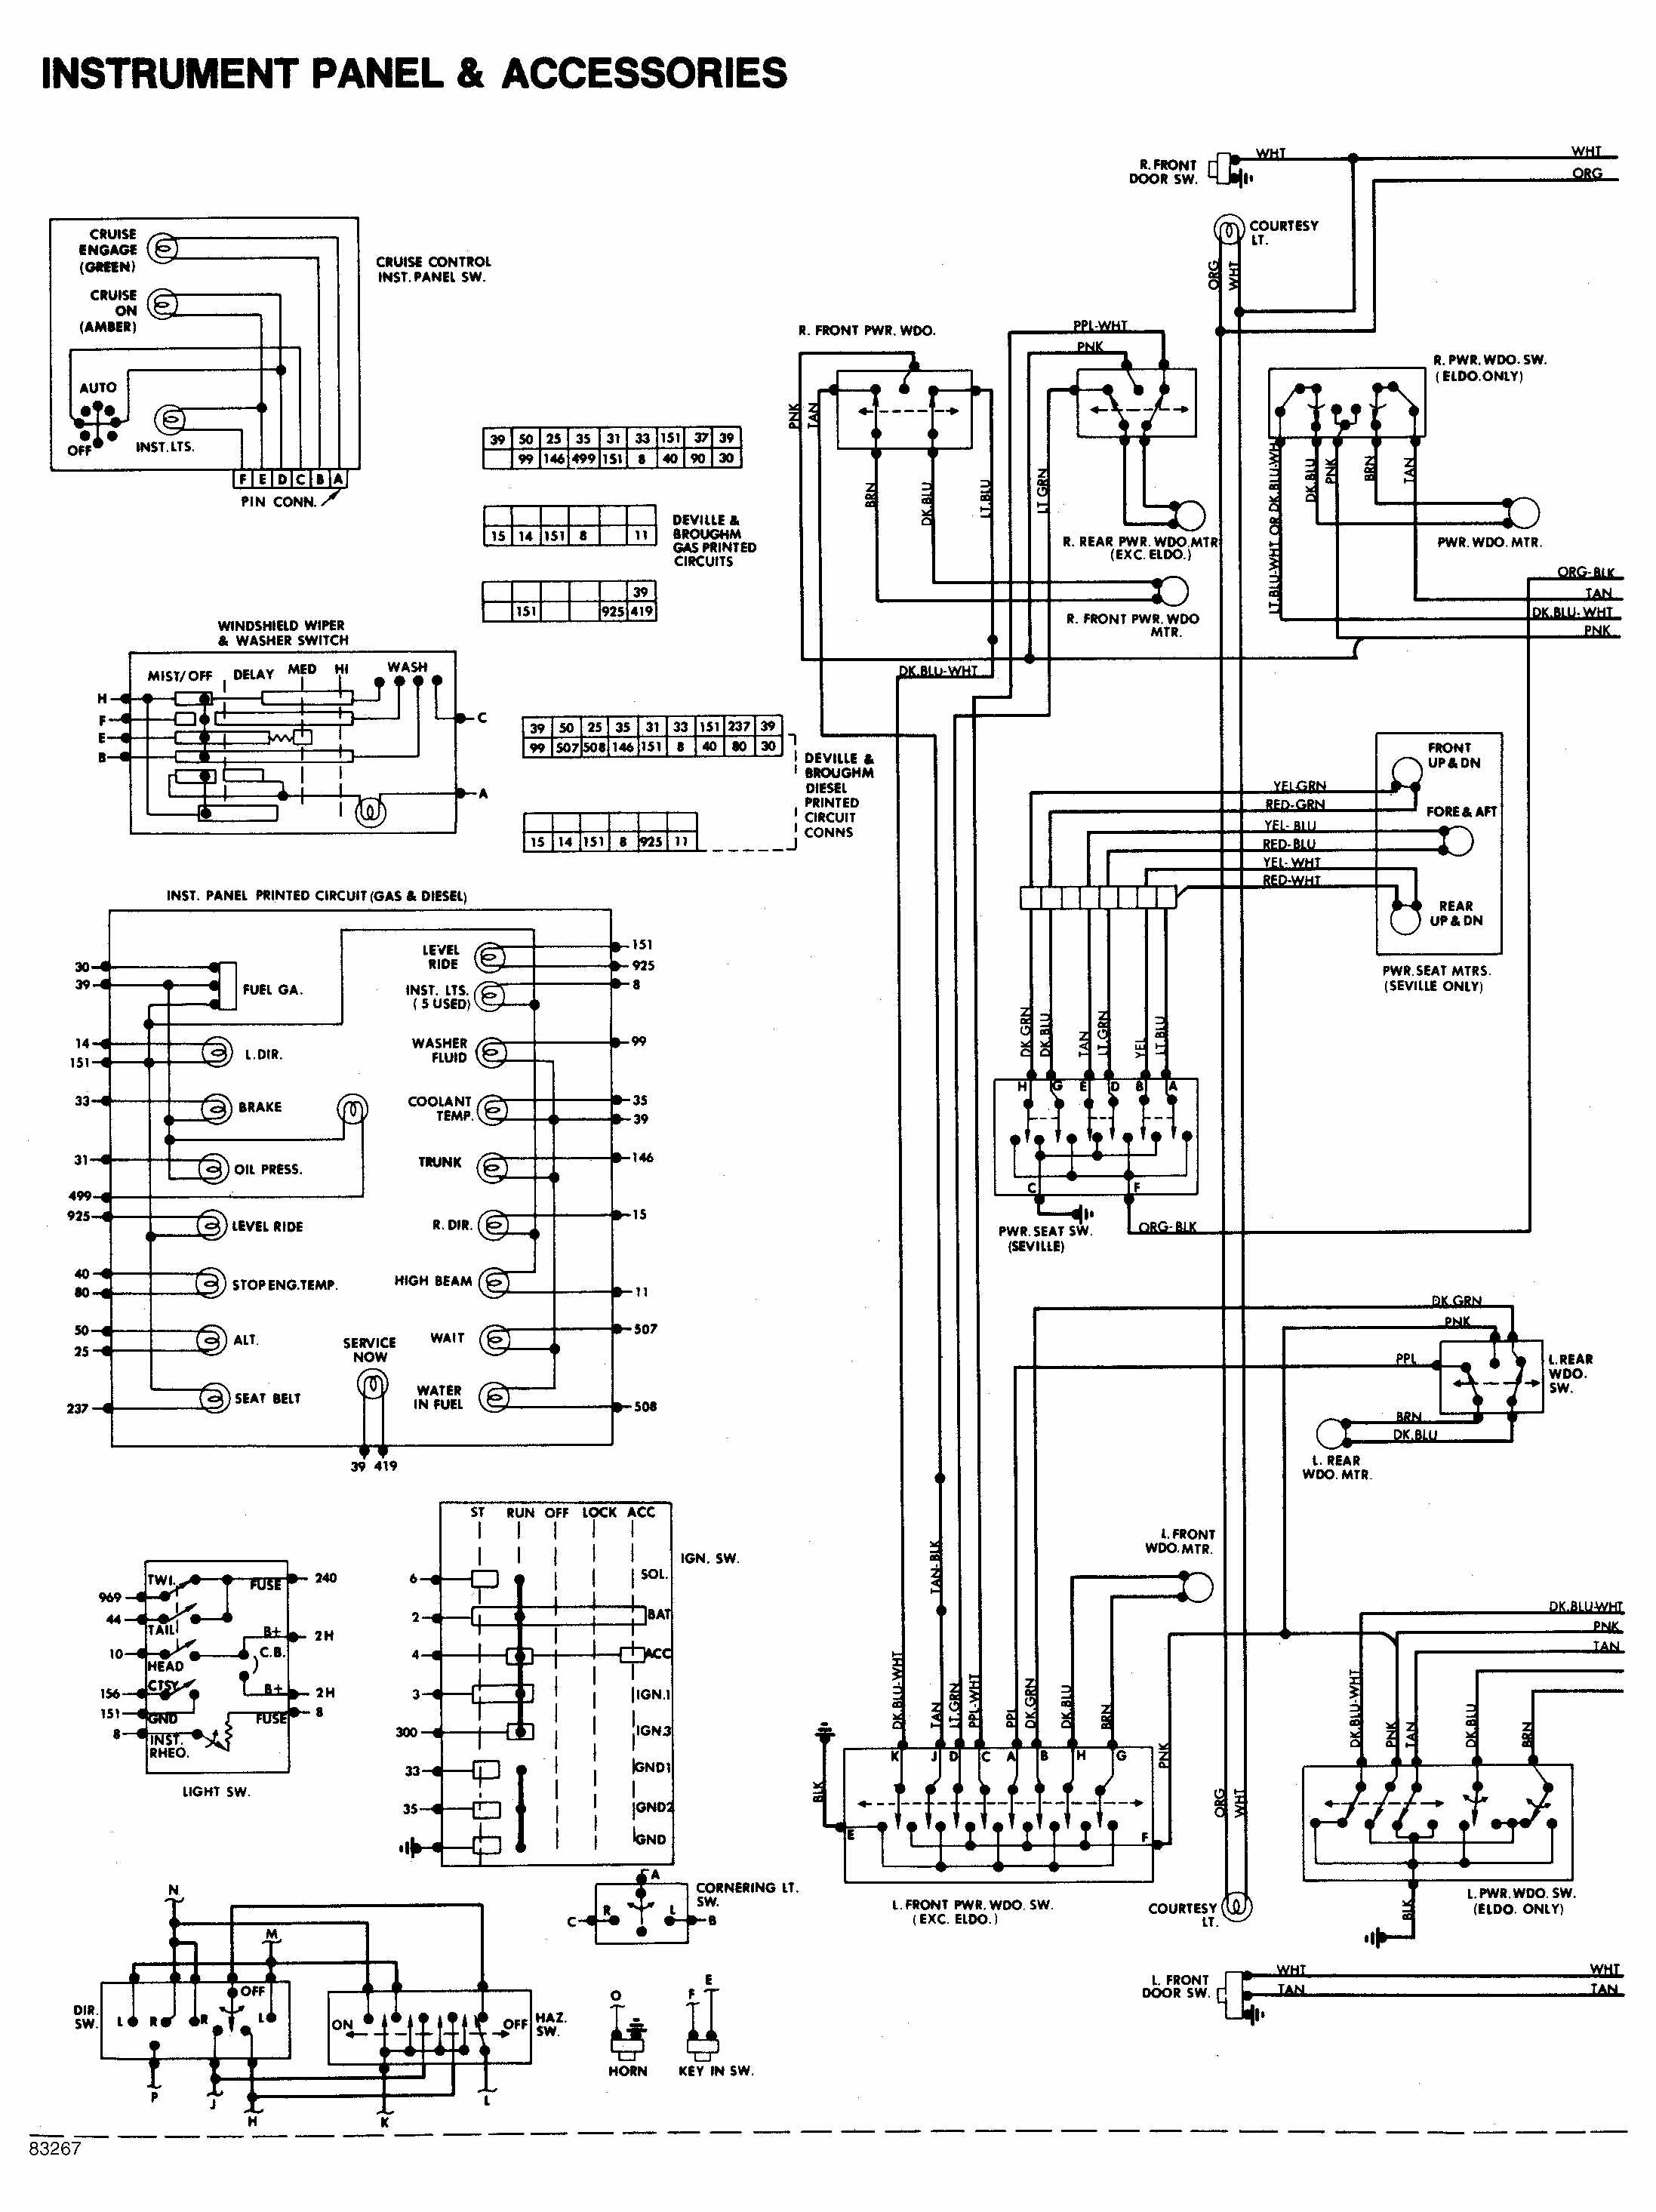 Chevy Diagrams besides 131 besides Oil Pump Replacement Cost furthermore 7uyfp Pontiac Bonneville Pontiac Bonneville 1995 Braking System besides 1972 Oldsmobile Cutlass Wiring Diagram. on 1992 cadillac deville engine diagram